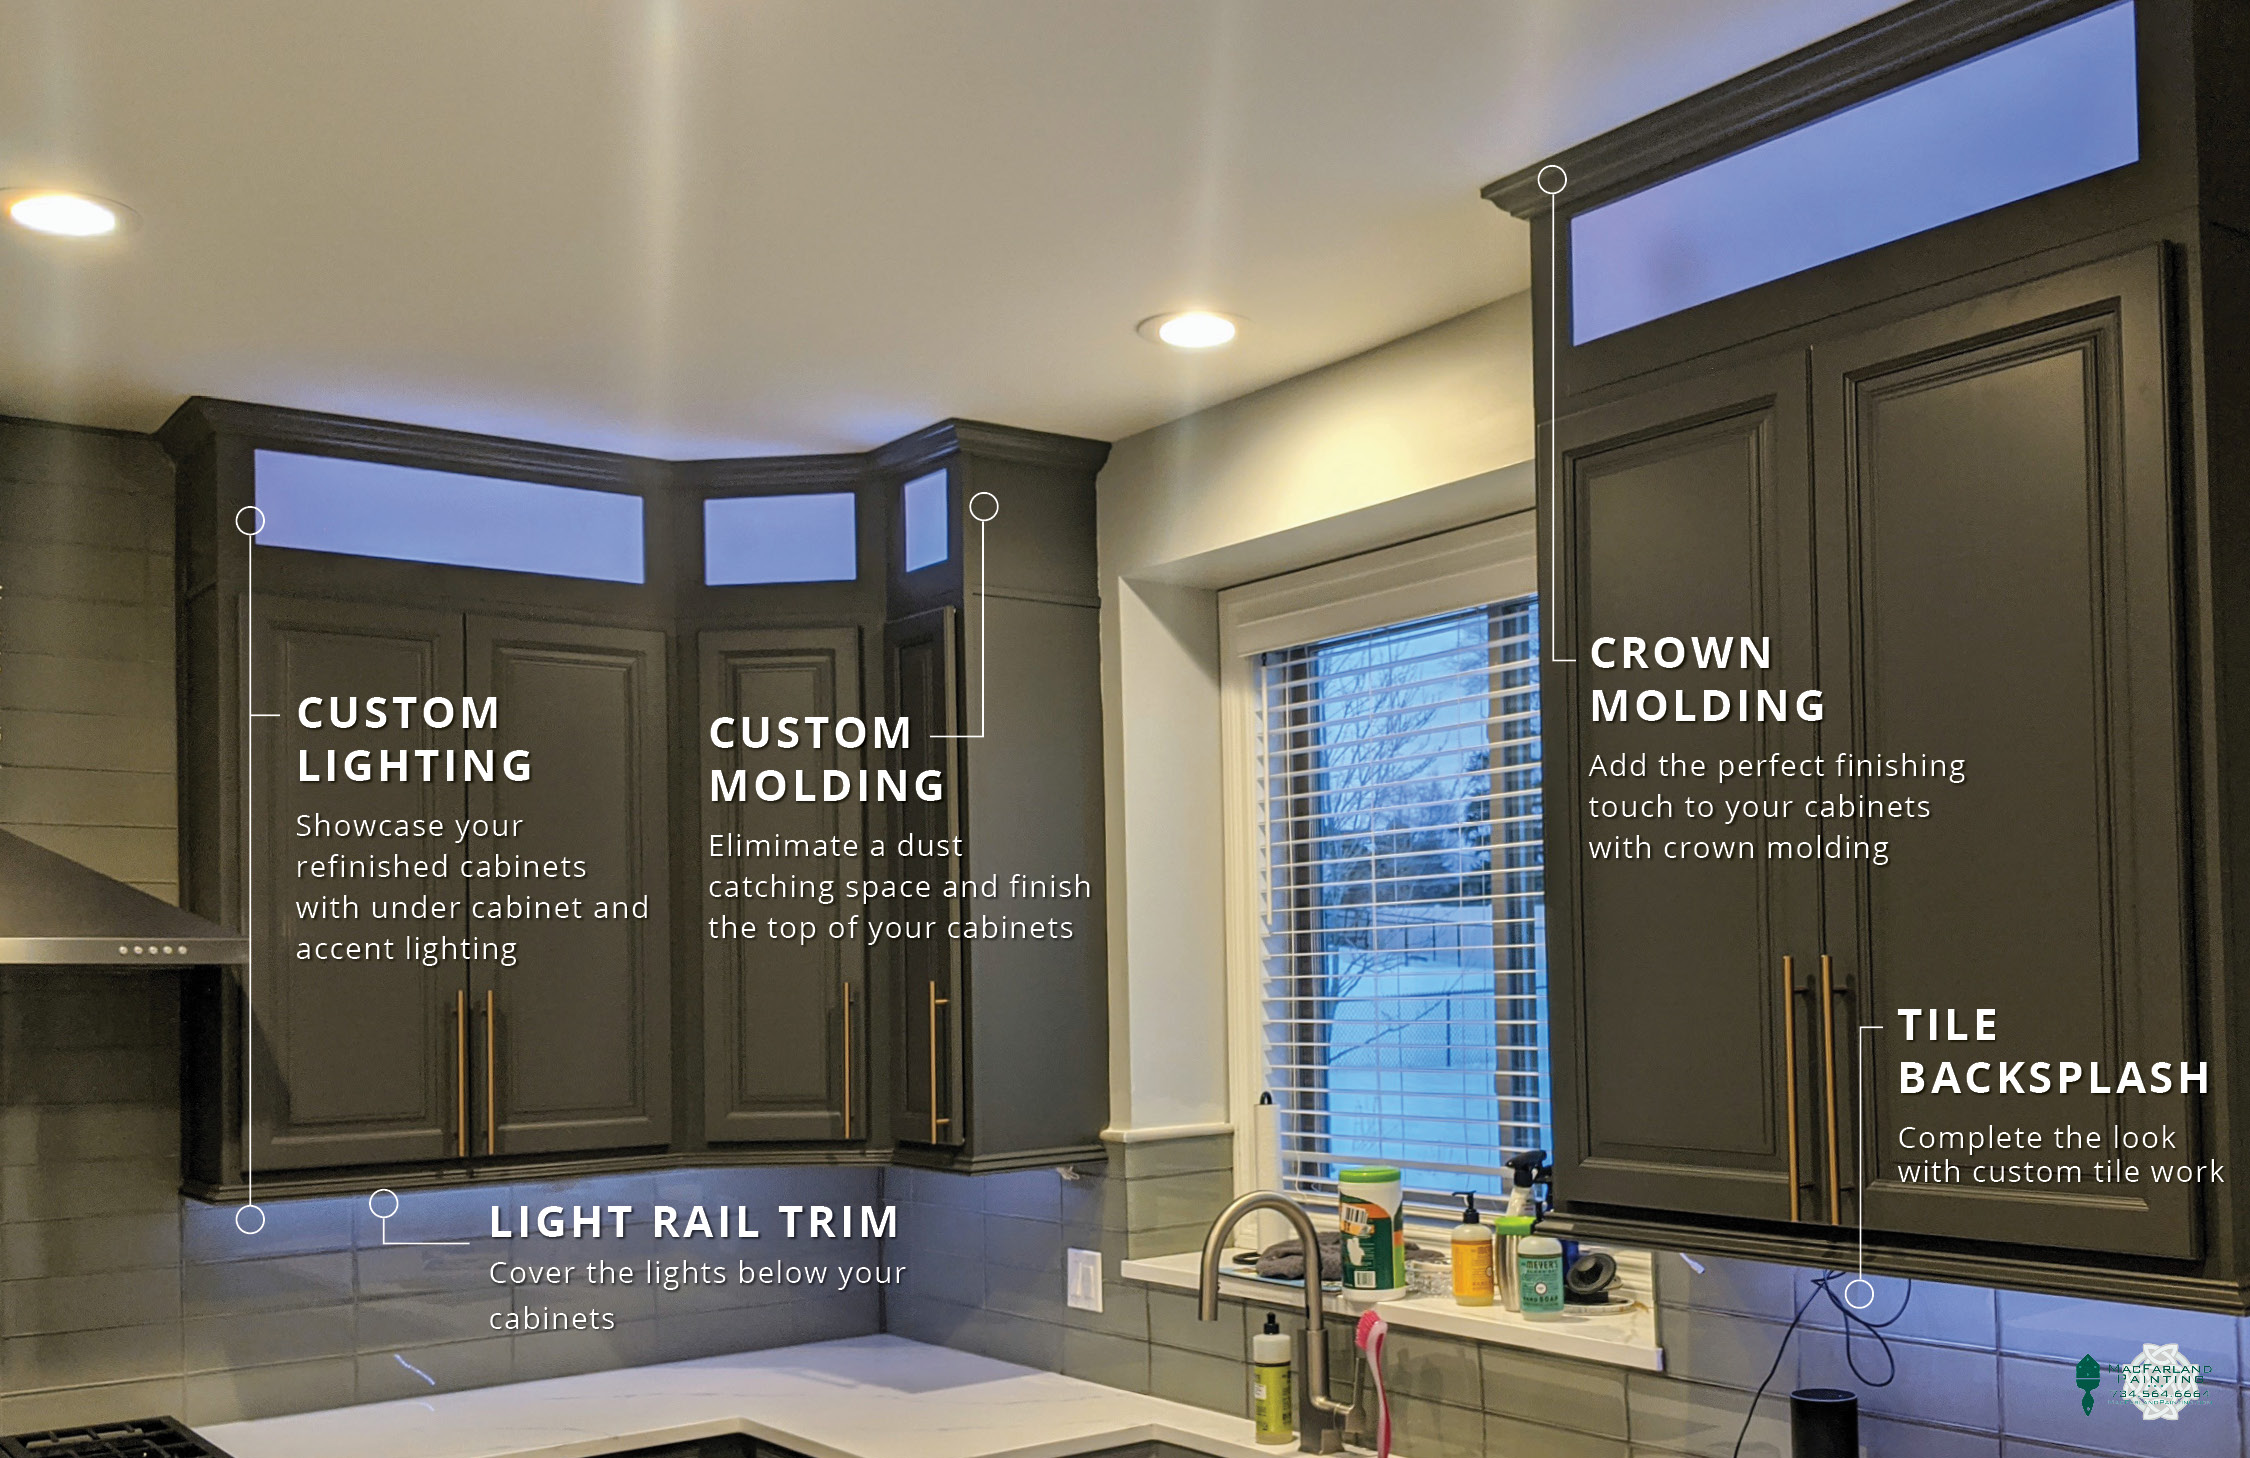 Custom Lighting, Custom Molding, Crown Molding, Tile Backsplash & Light Rail Trim